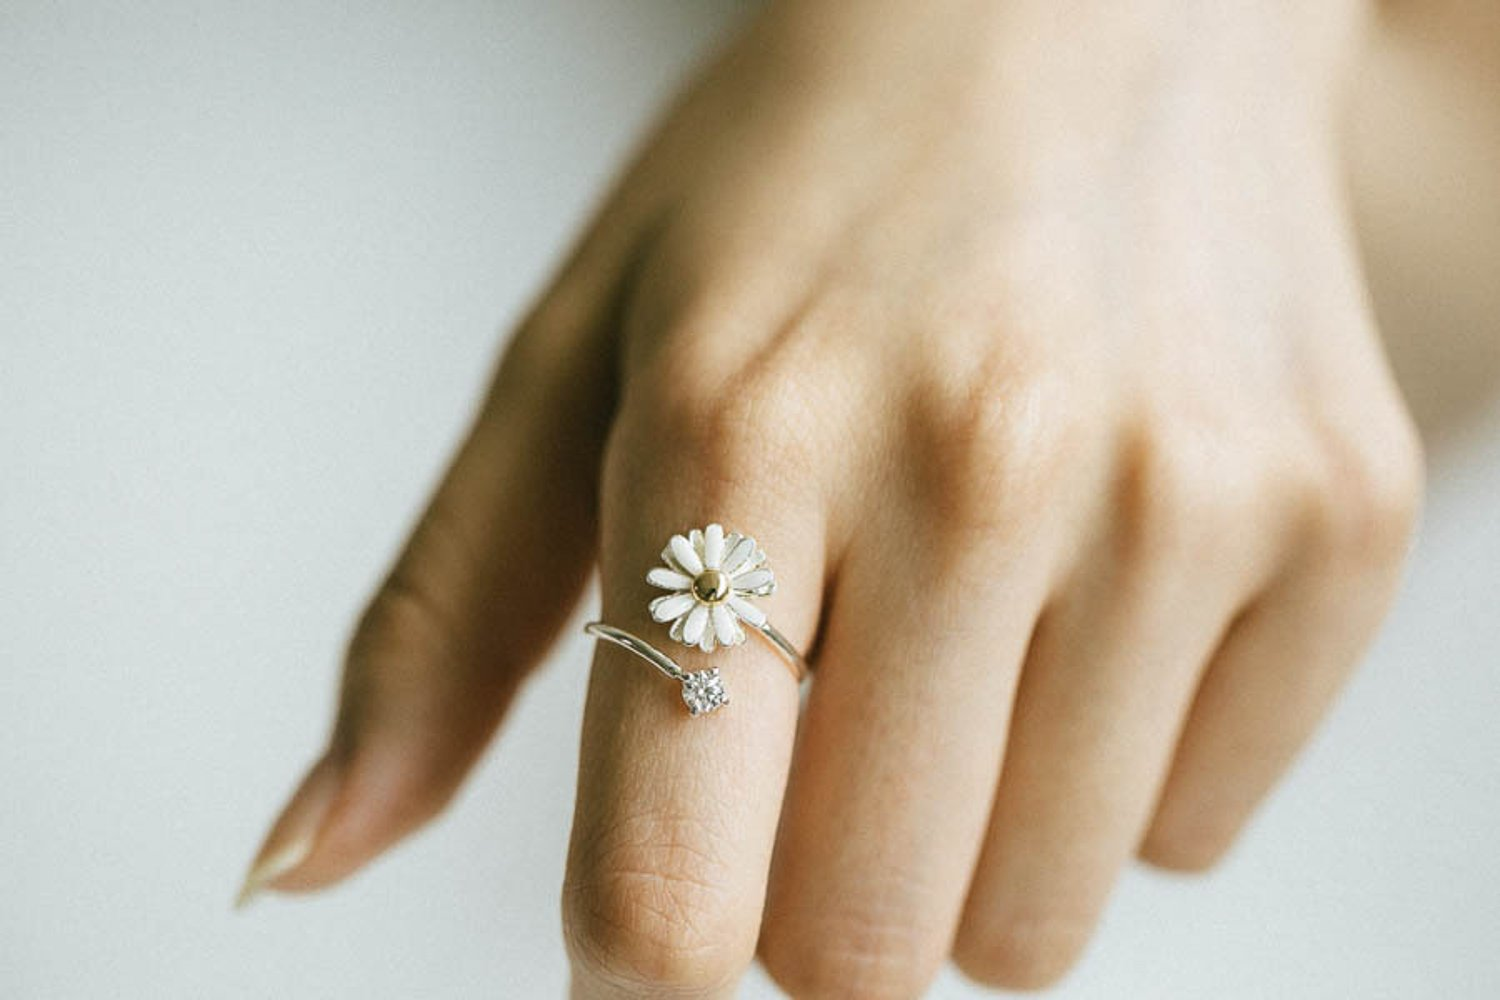 fashion jewelry bling beautiful cute simple brass for women teens girls friend her pretty adjustable expendables scratch midi knuckle wrap around cz cubic zirconia plant white leaf daisy flower ring